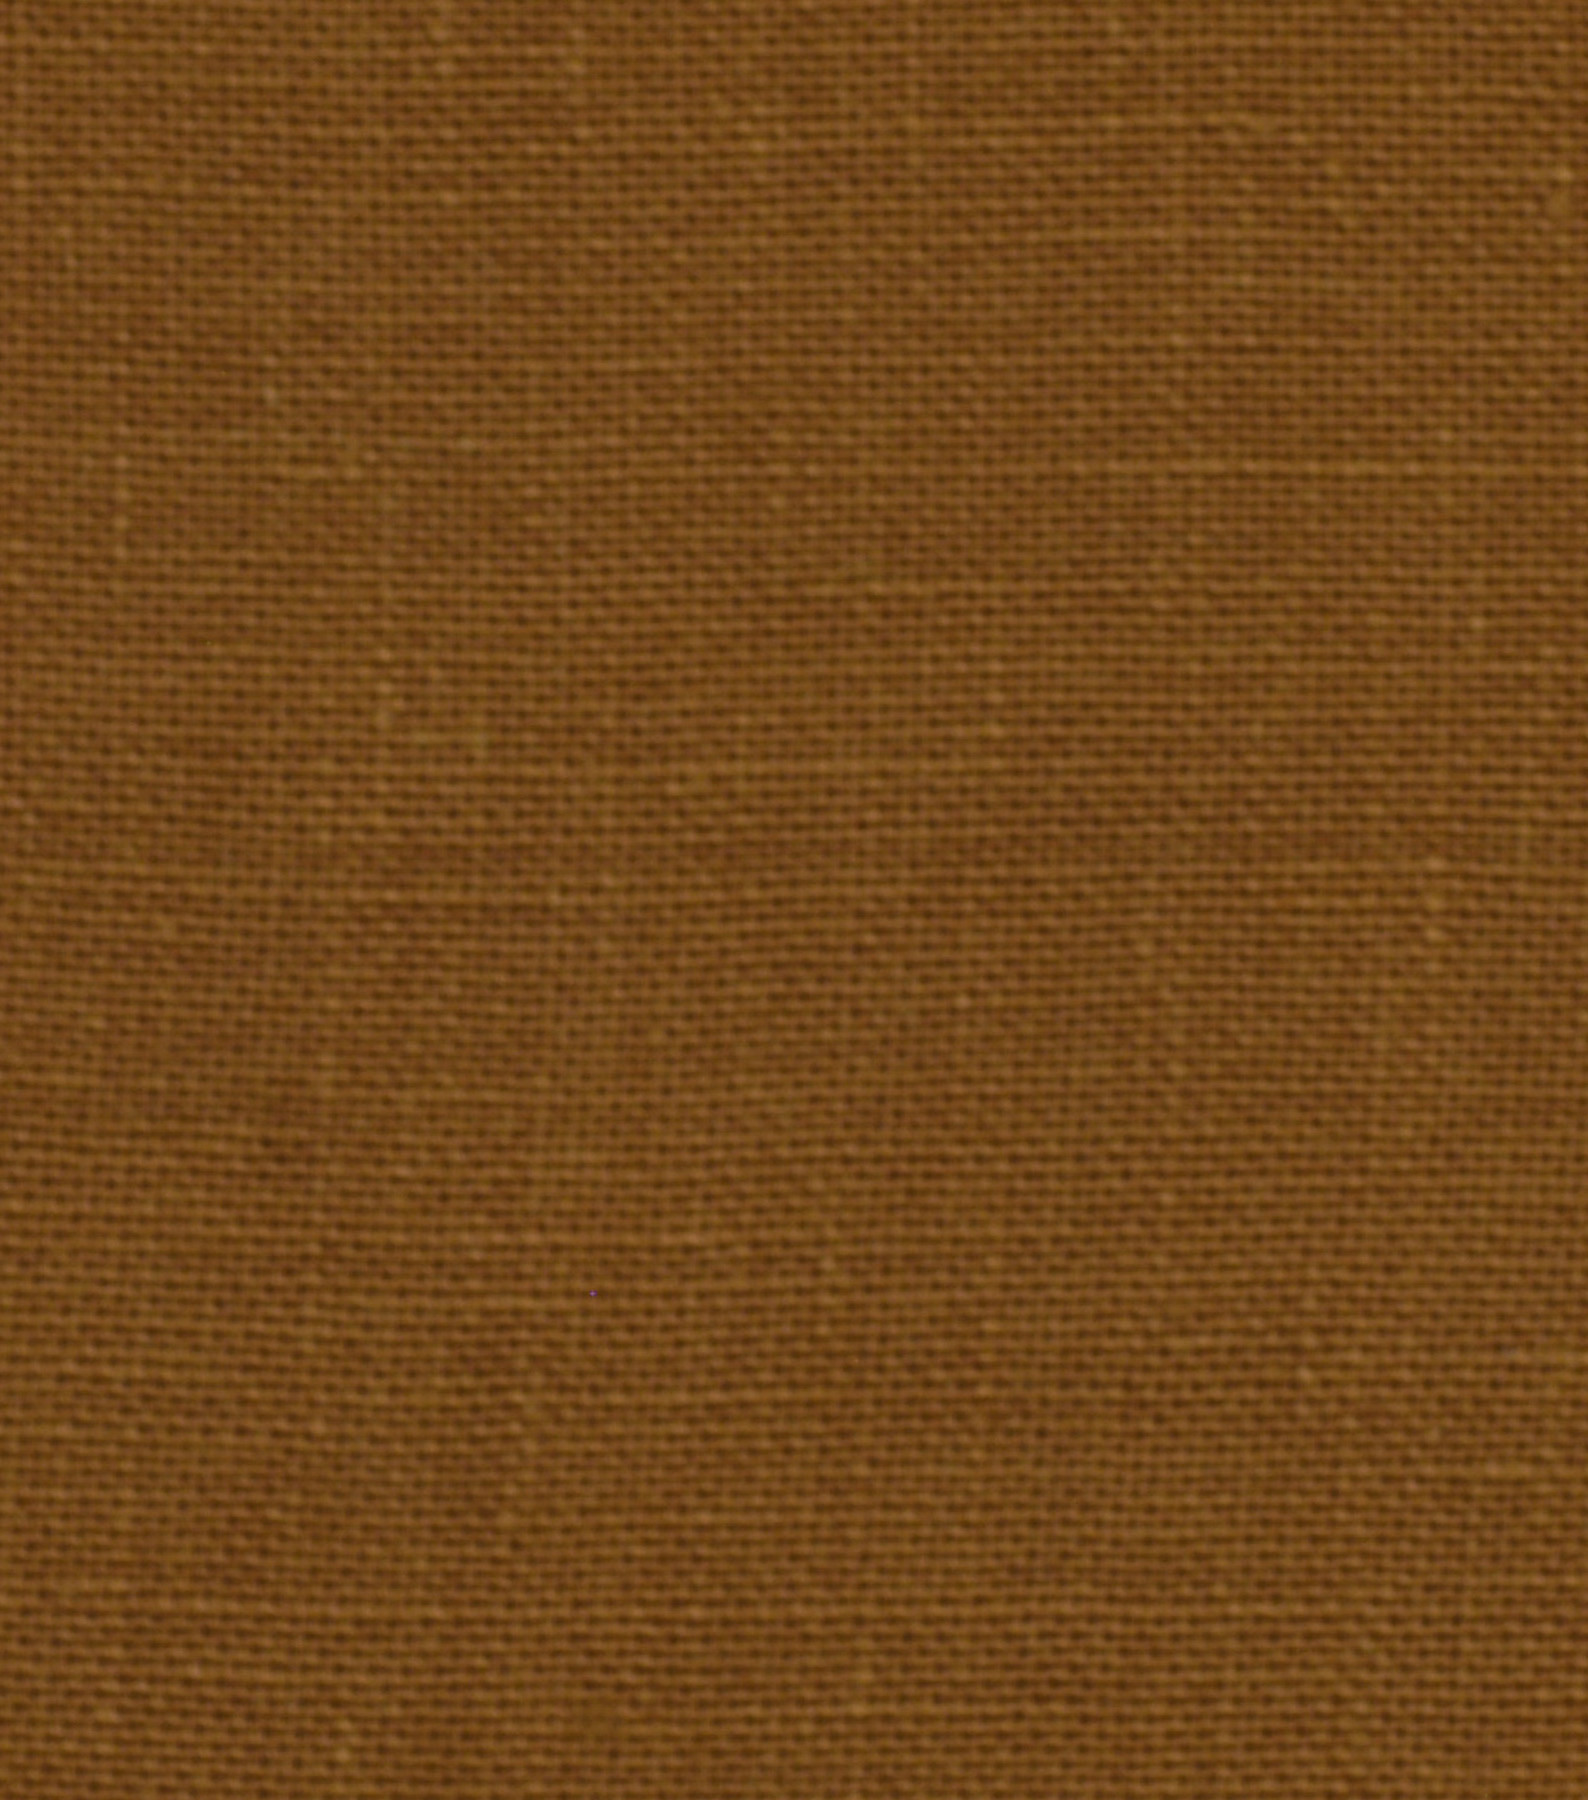 Home Decor 8\u0022x8\u0022 Fabric Swatch-Signature Series Kilrush Terracotta